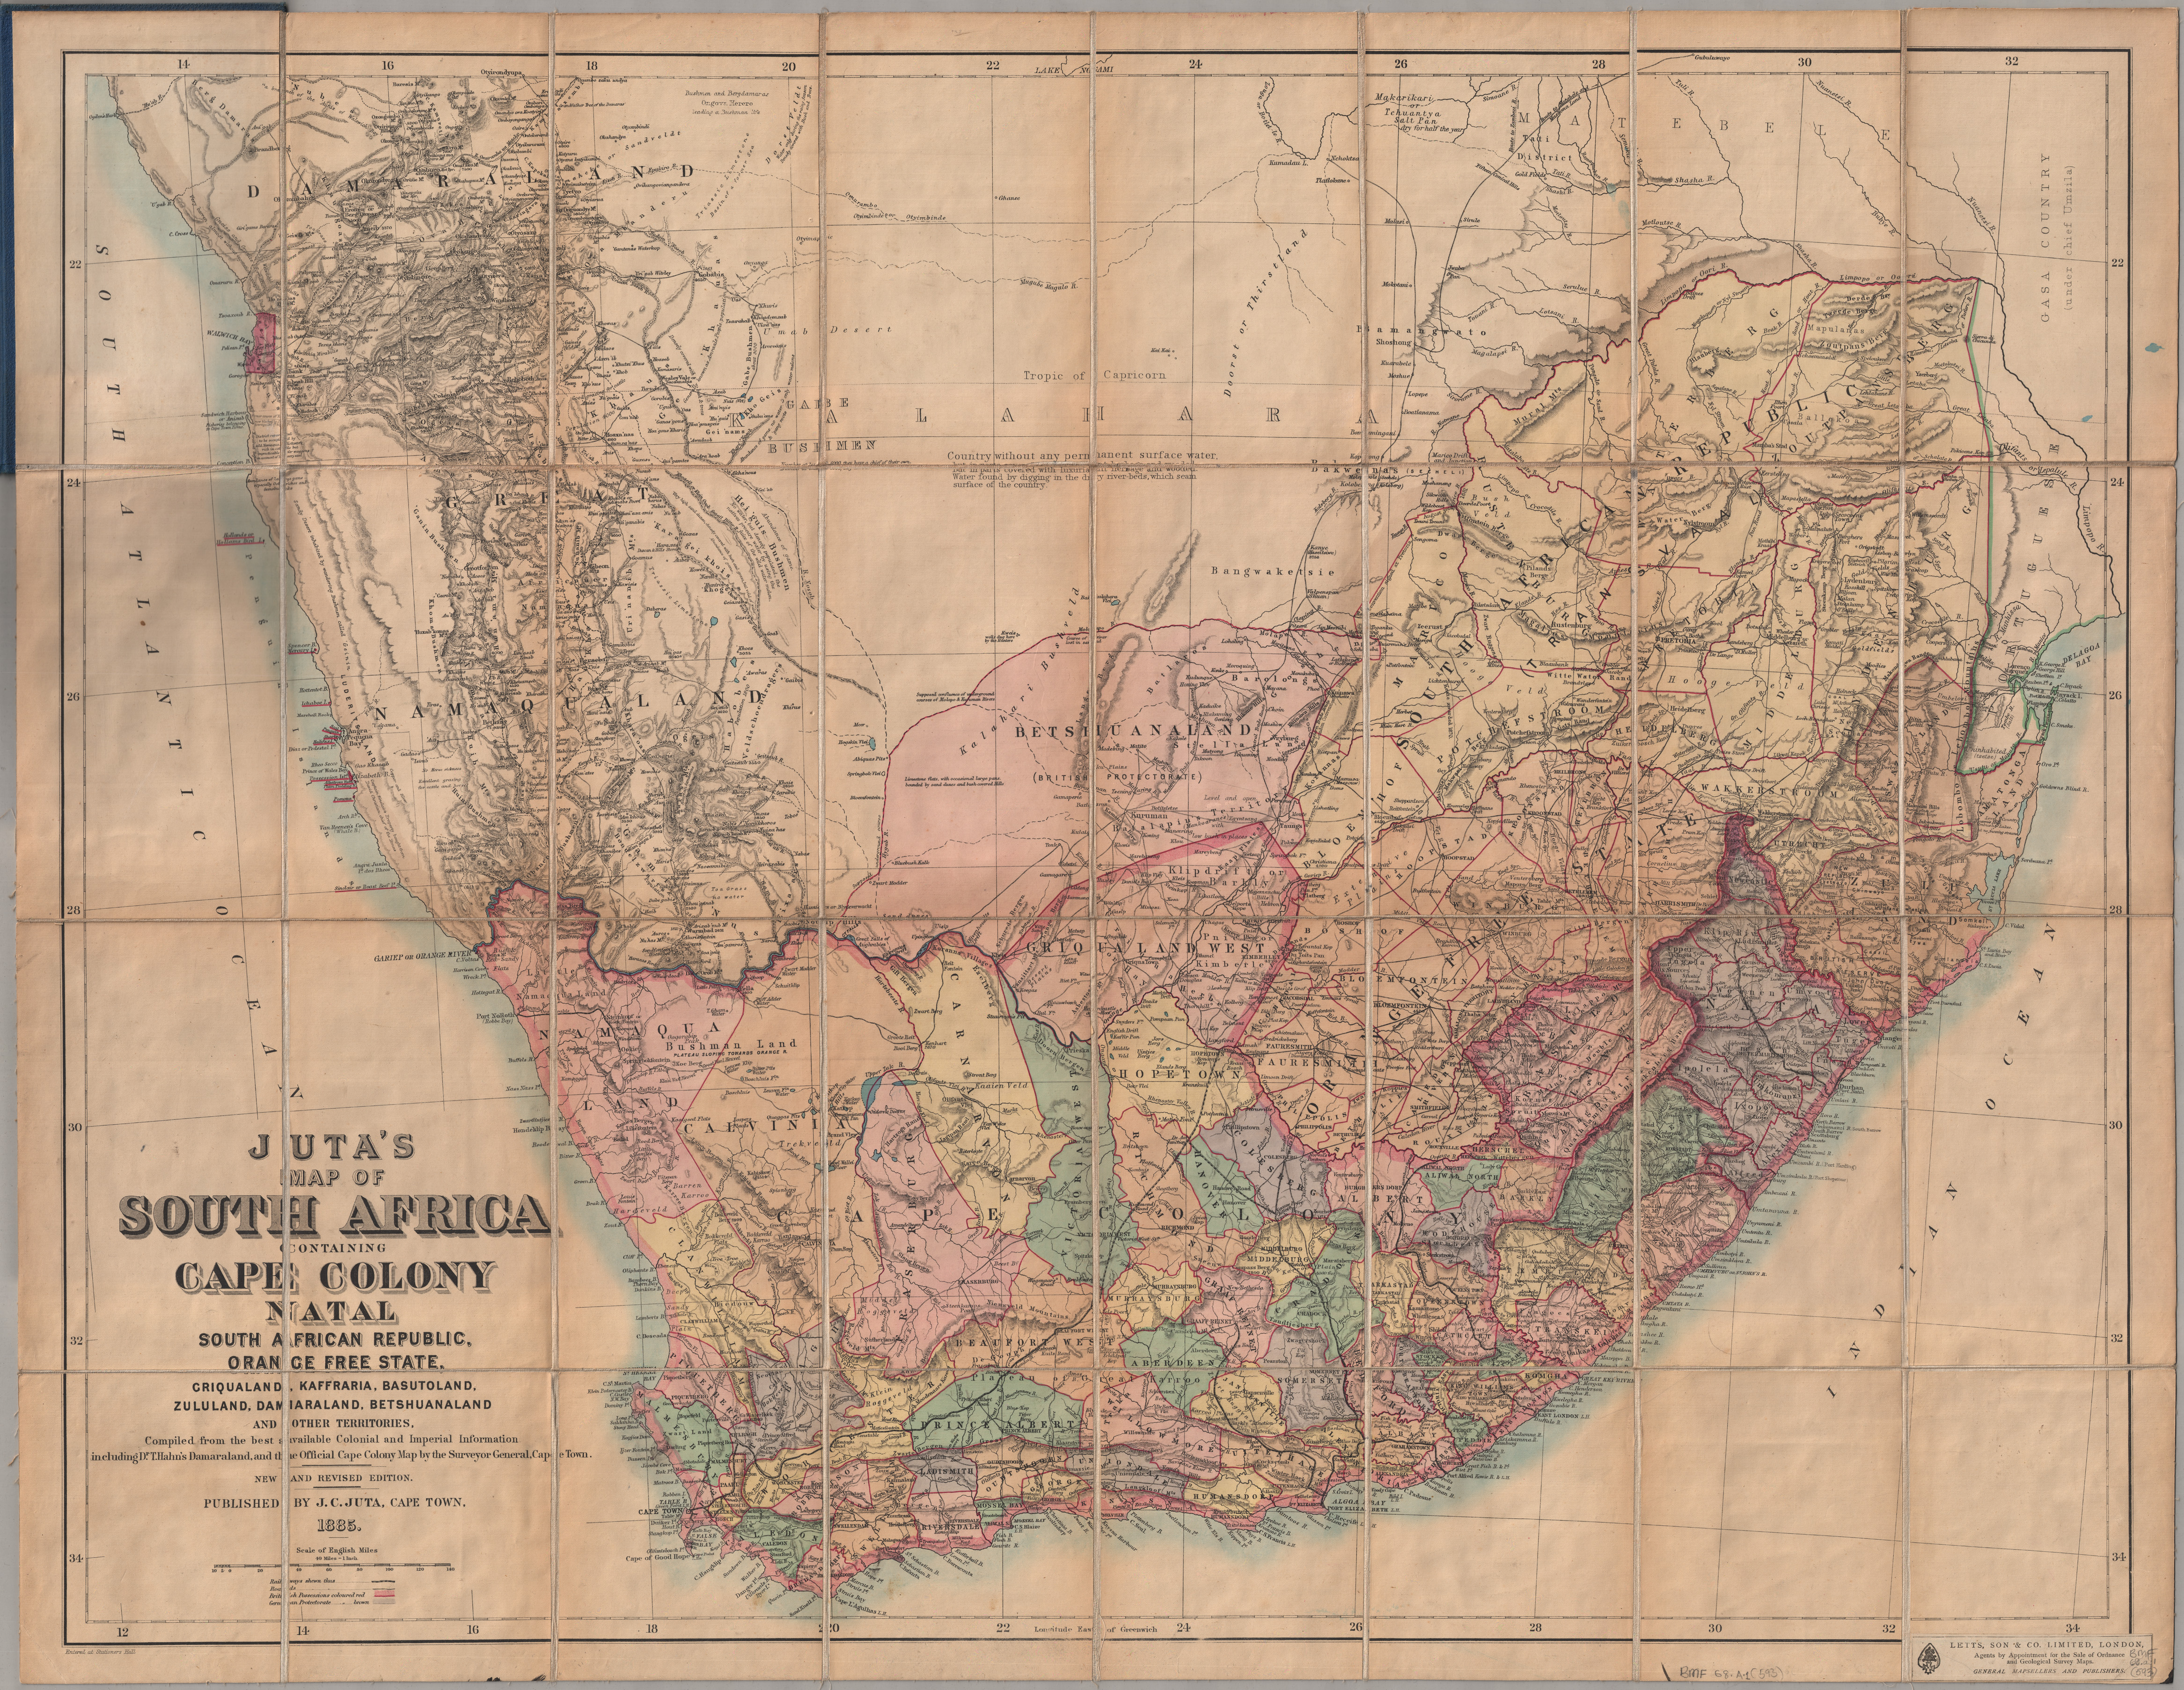 Jutas map of South Africa containing Cape Colony Natal South